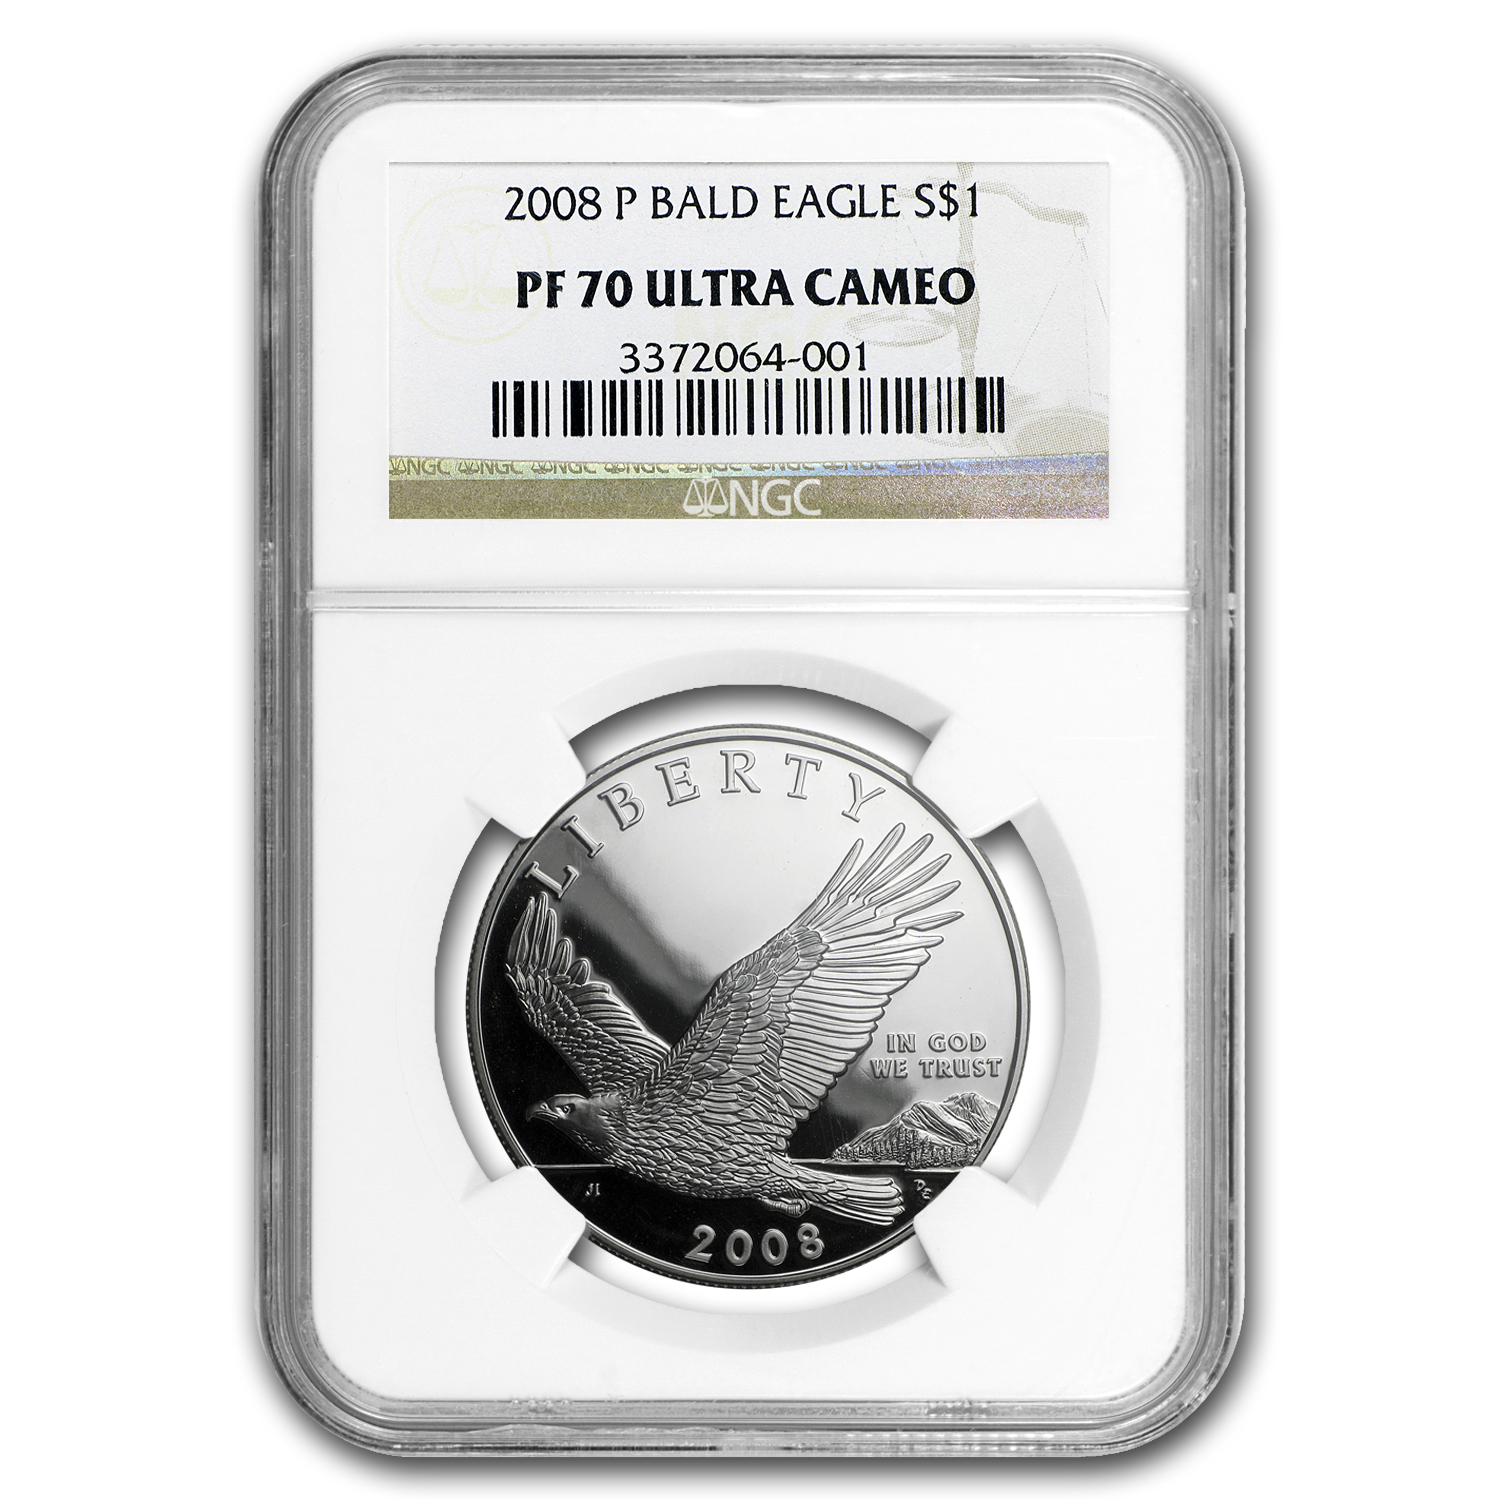 2008-P Bald Eagle $1 Silver Commemorative PF-70 NGC